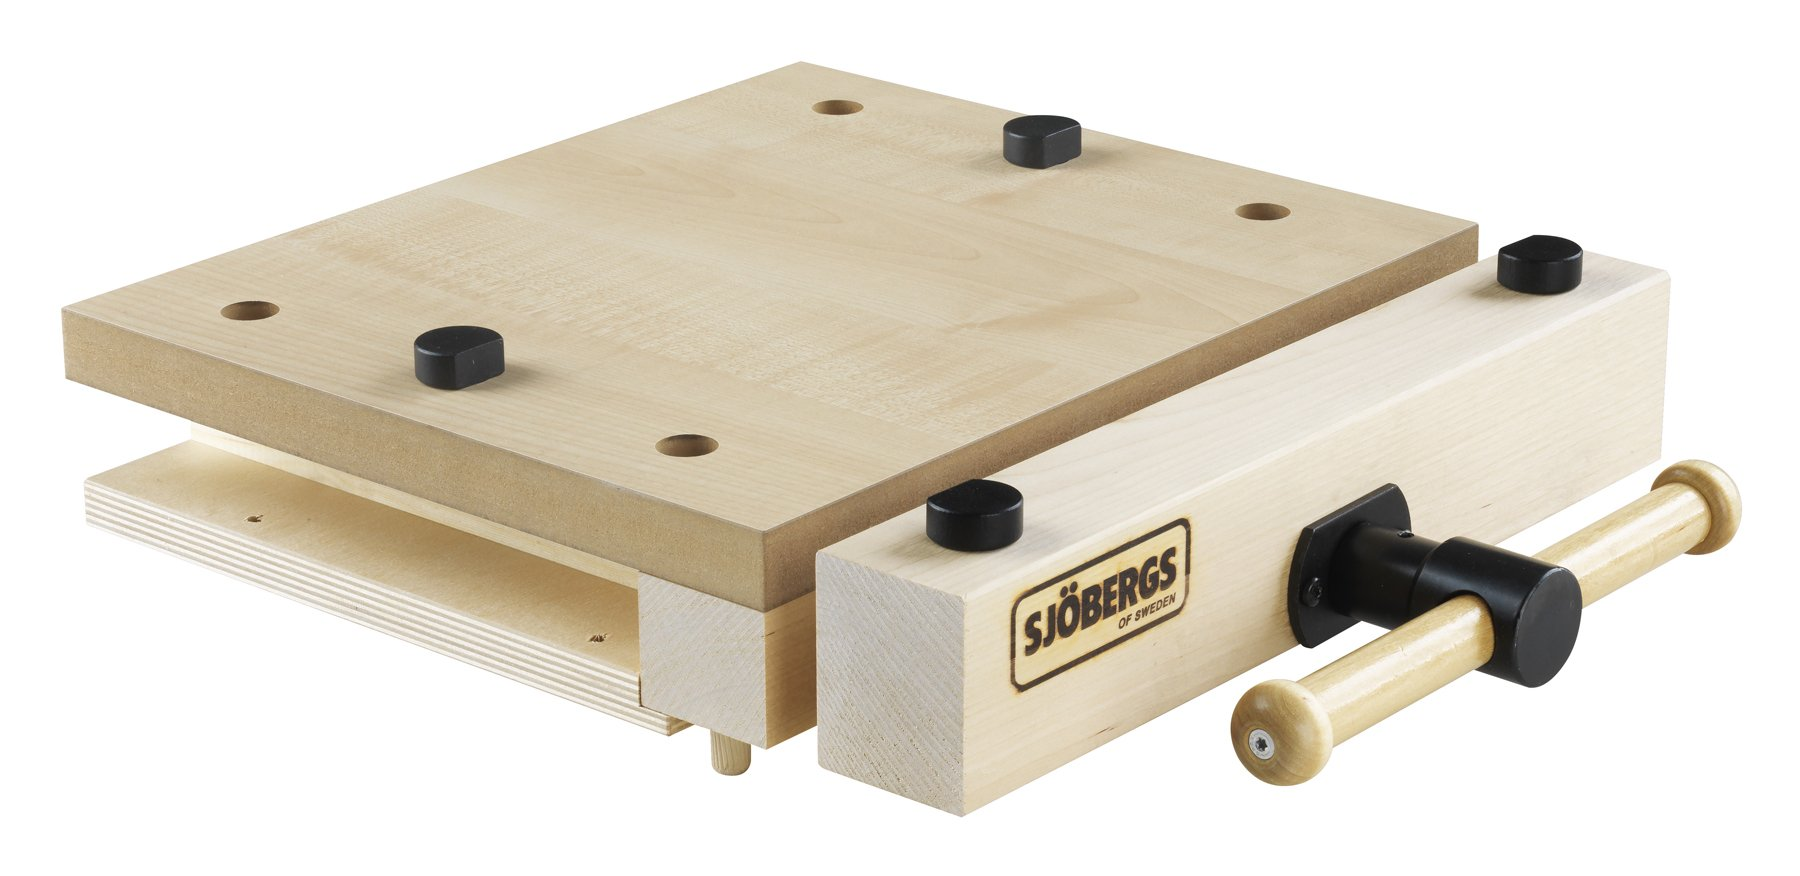 Sjobergs SJO-33274 Woodworking Portable Smart Vice with Superior Clamping Power Wherever You Need It by Sjobergs